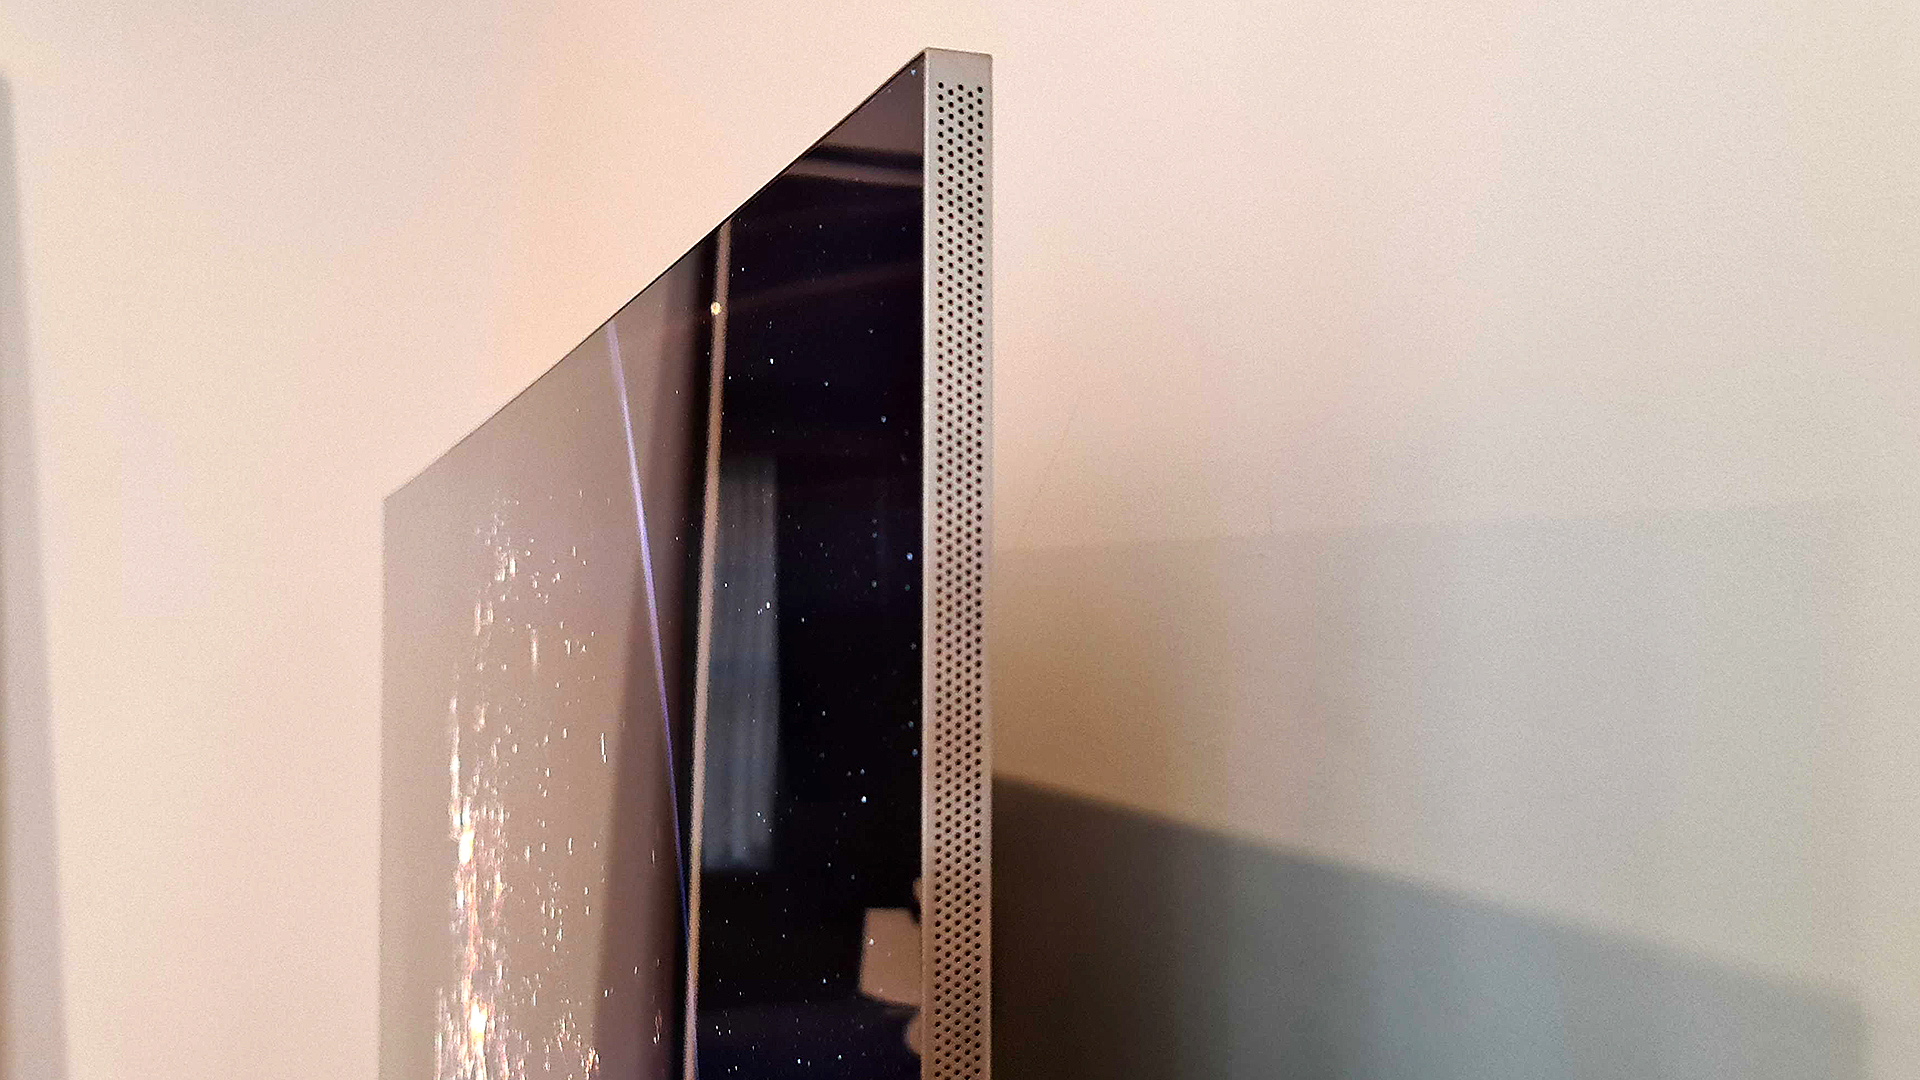 The QN900A's speaker grills are only visible from the side.